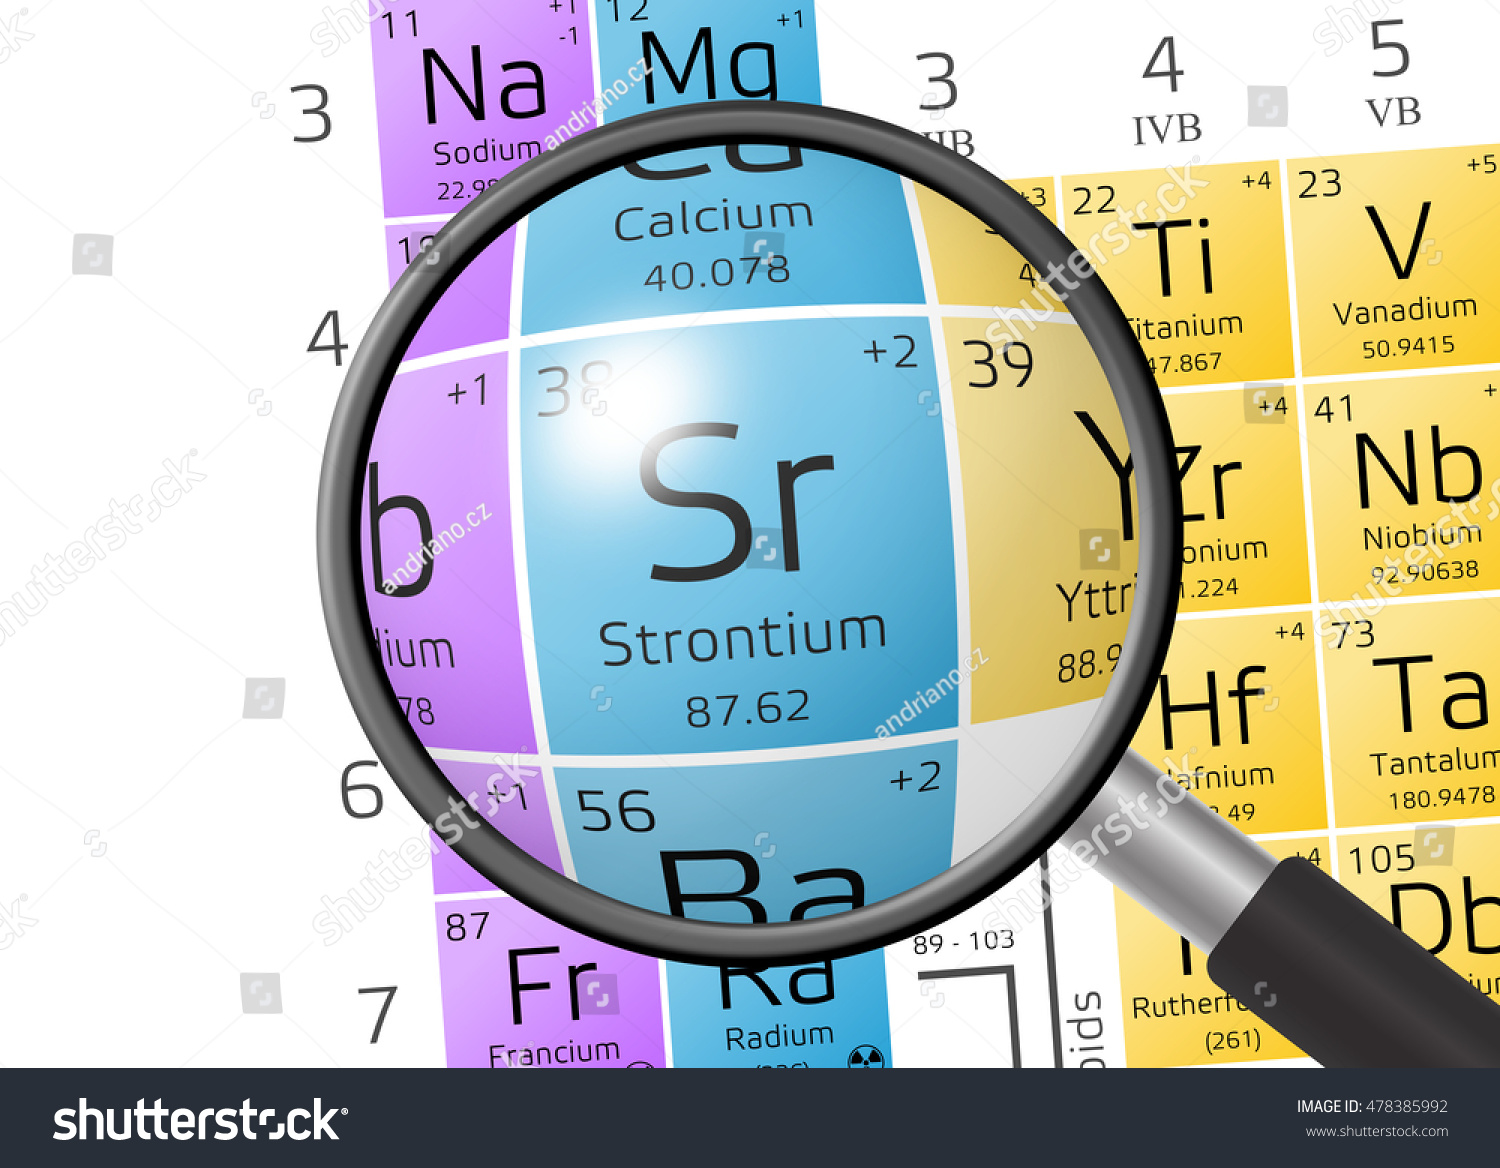 Strontium symbol periodic table image collections periodic table strontium symbol periodic table images periodic table images strontium symbol periodic table choice image periodic table gamestrikefo Image collections